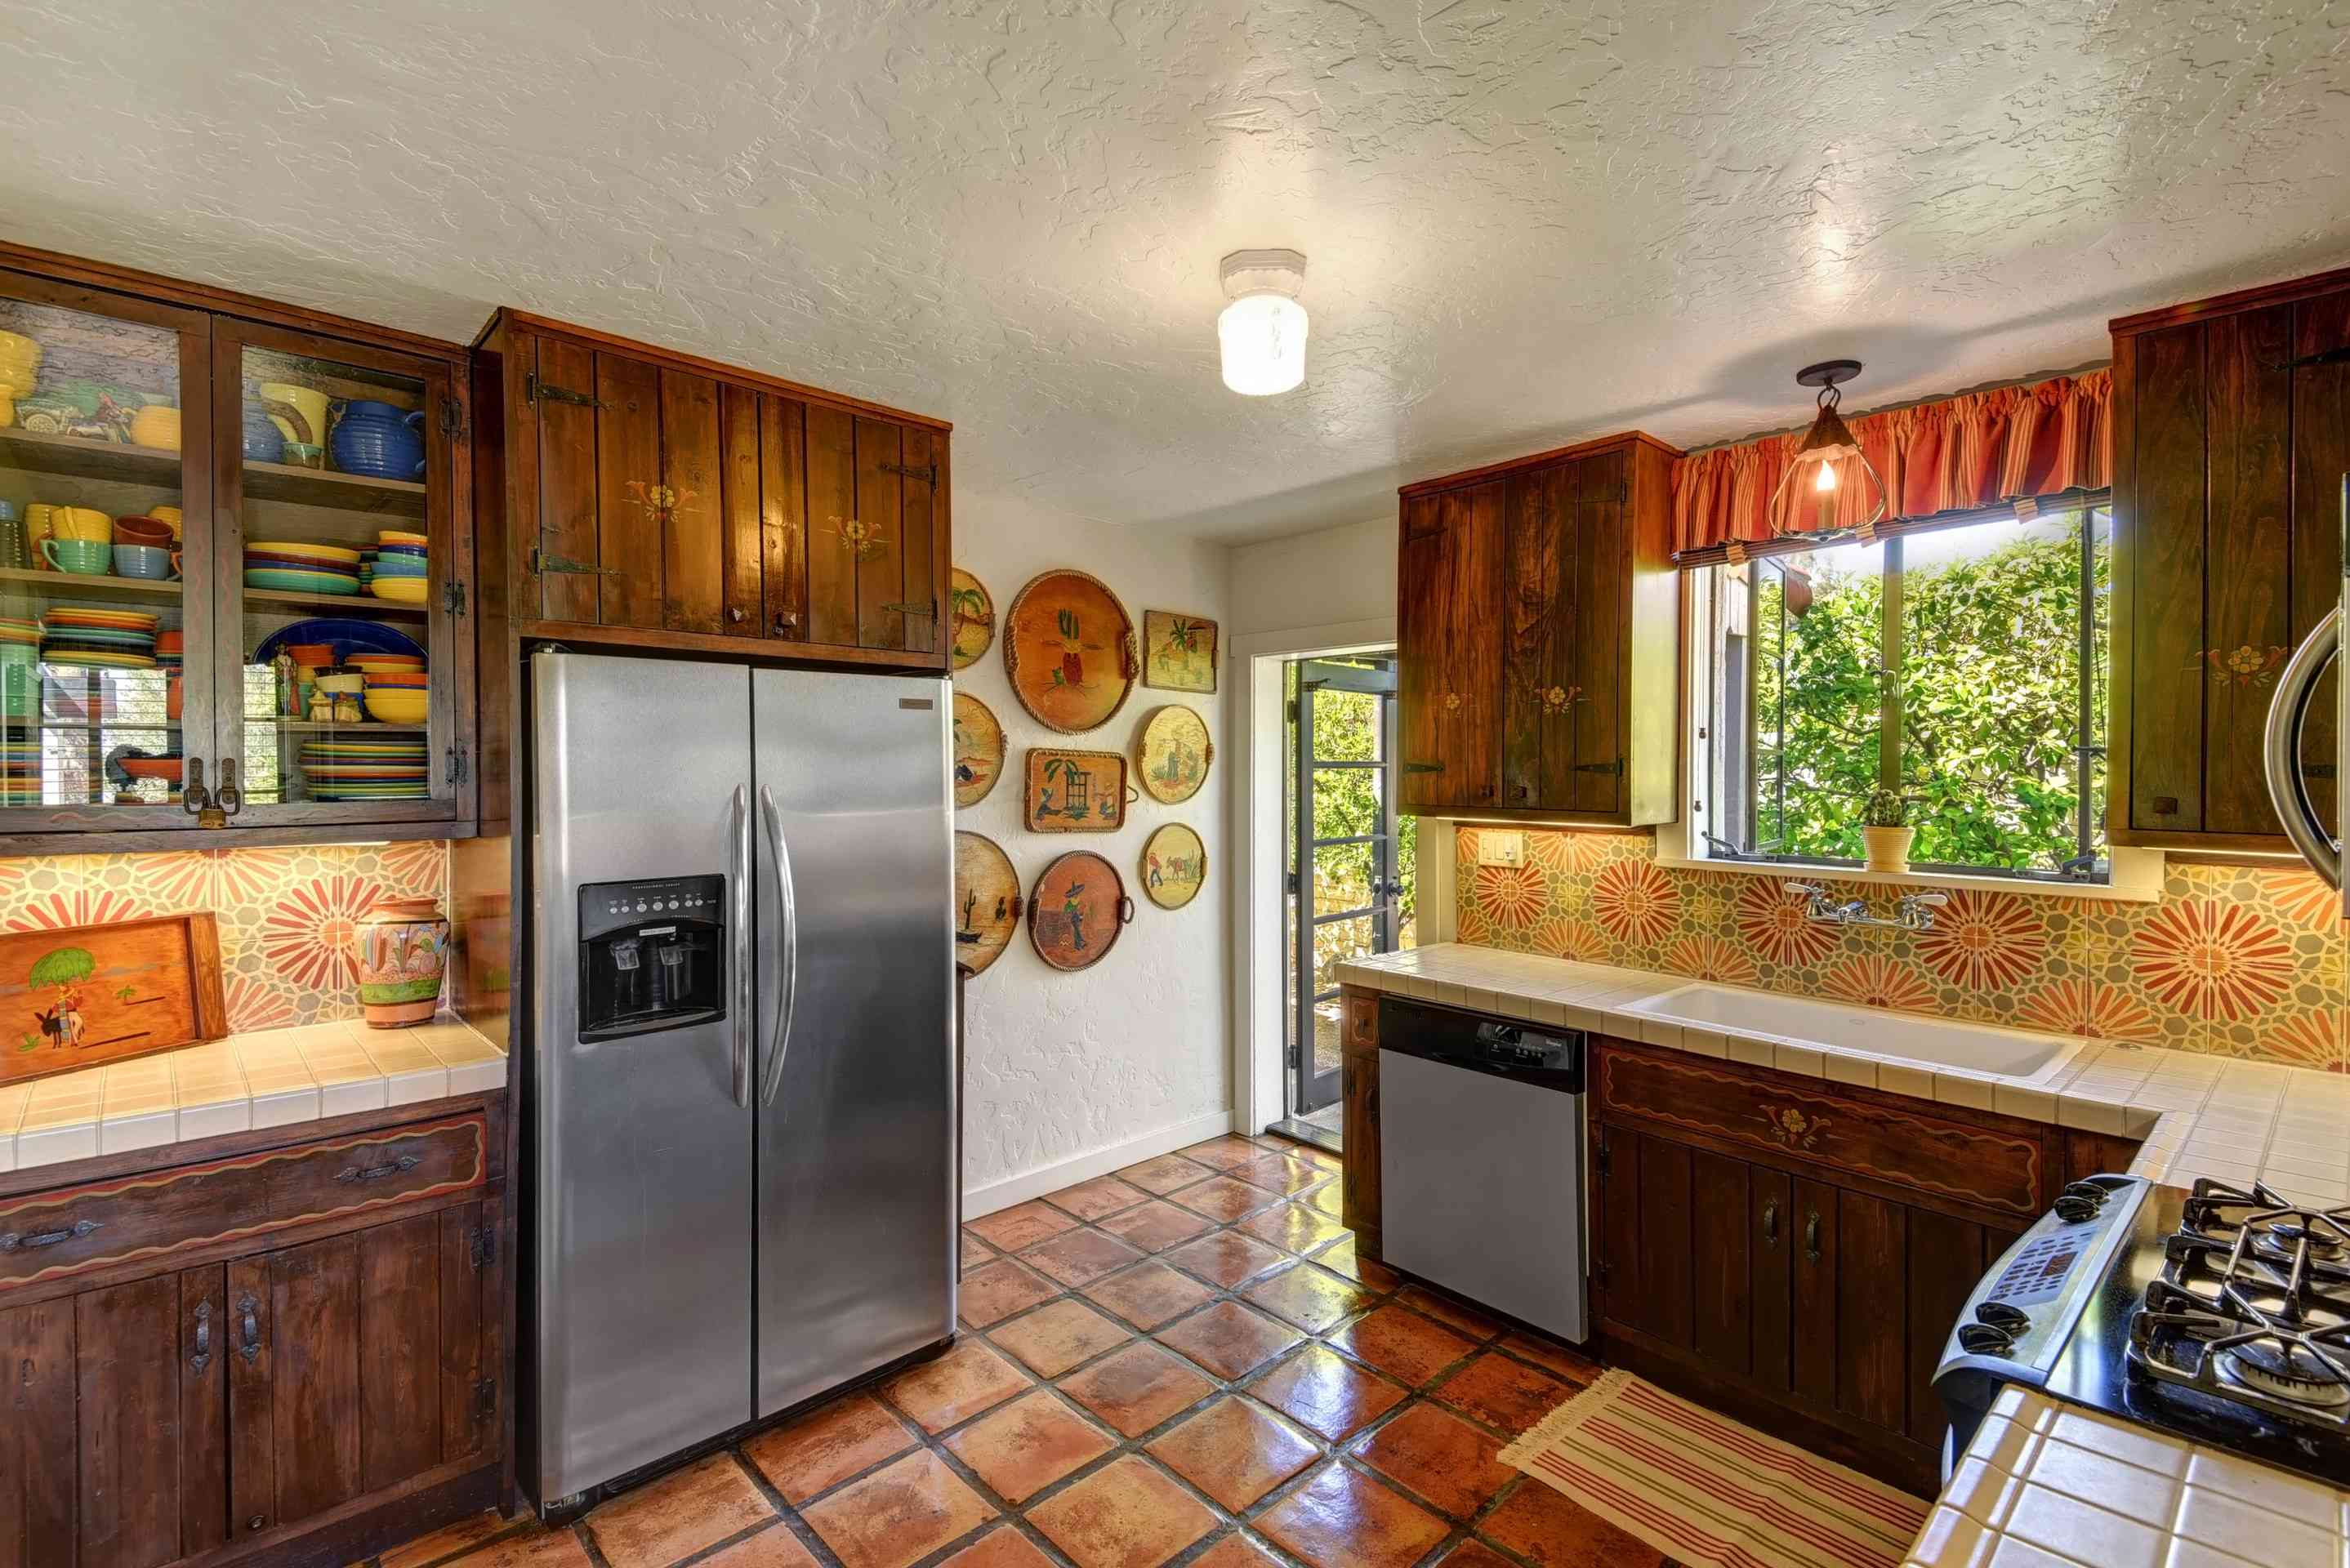 Spanish Style Kitchens For Your Next Remodel